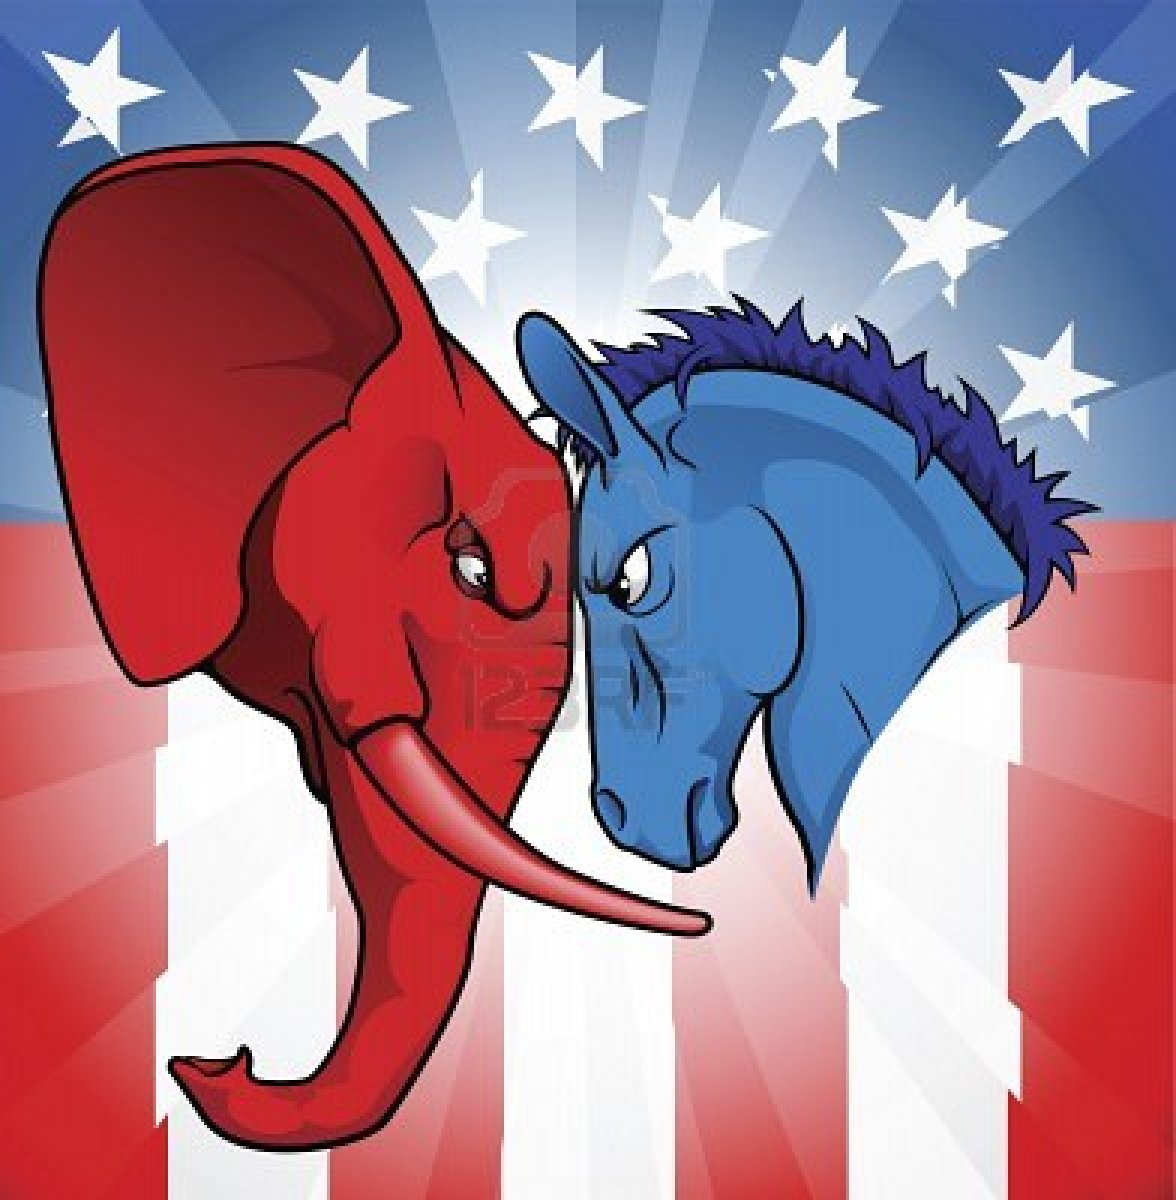 9326220 The Democrat And Republican Symbols Of A Donkey And Elephant